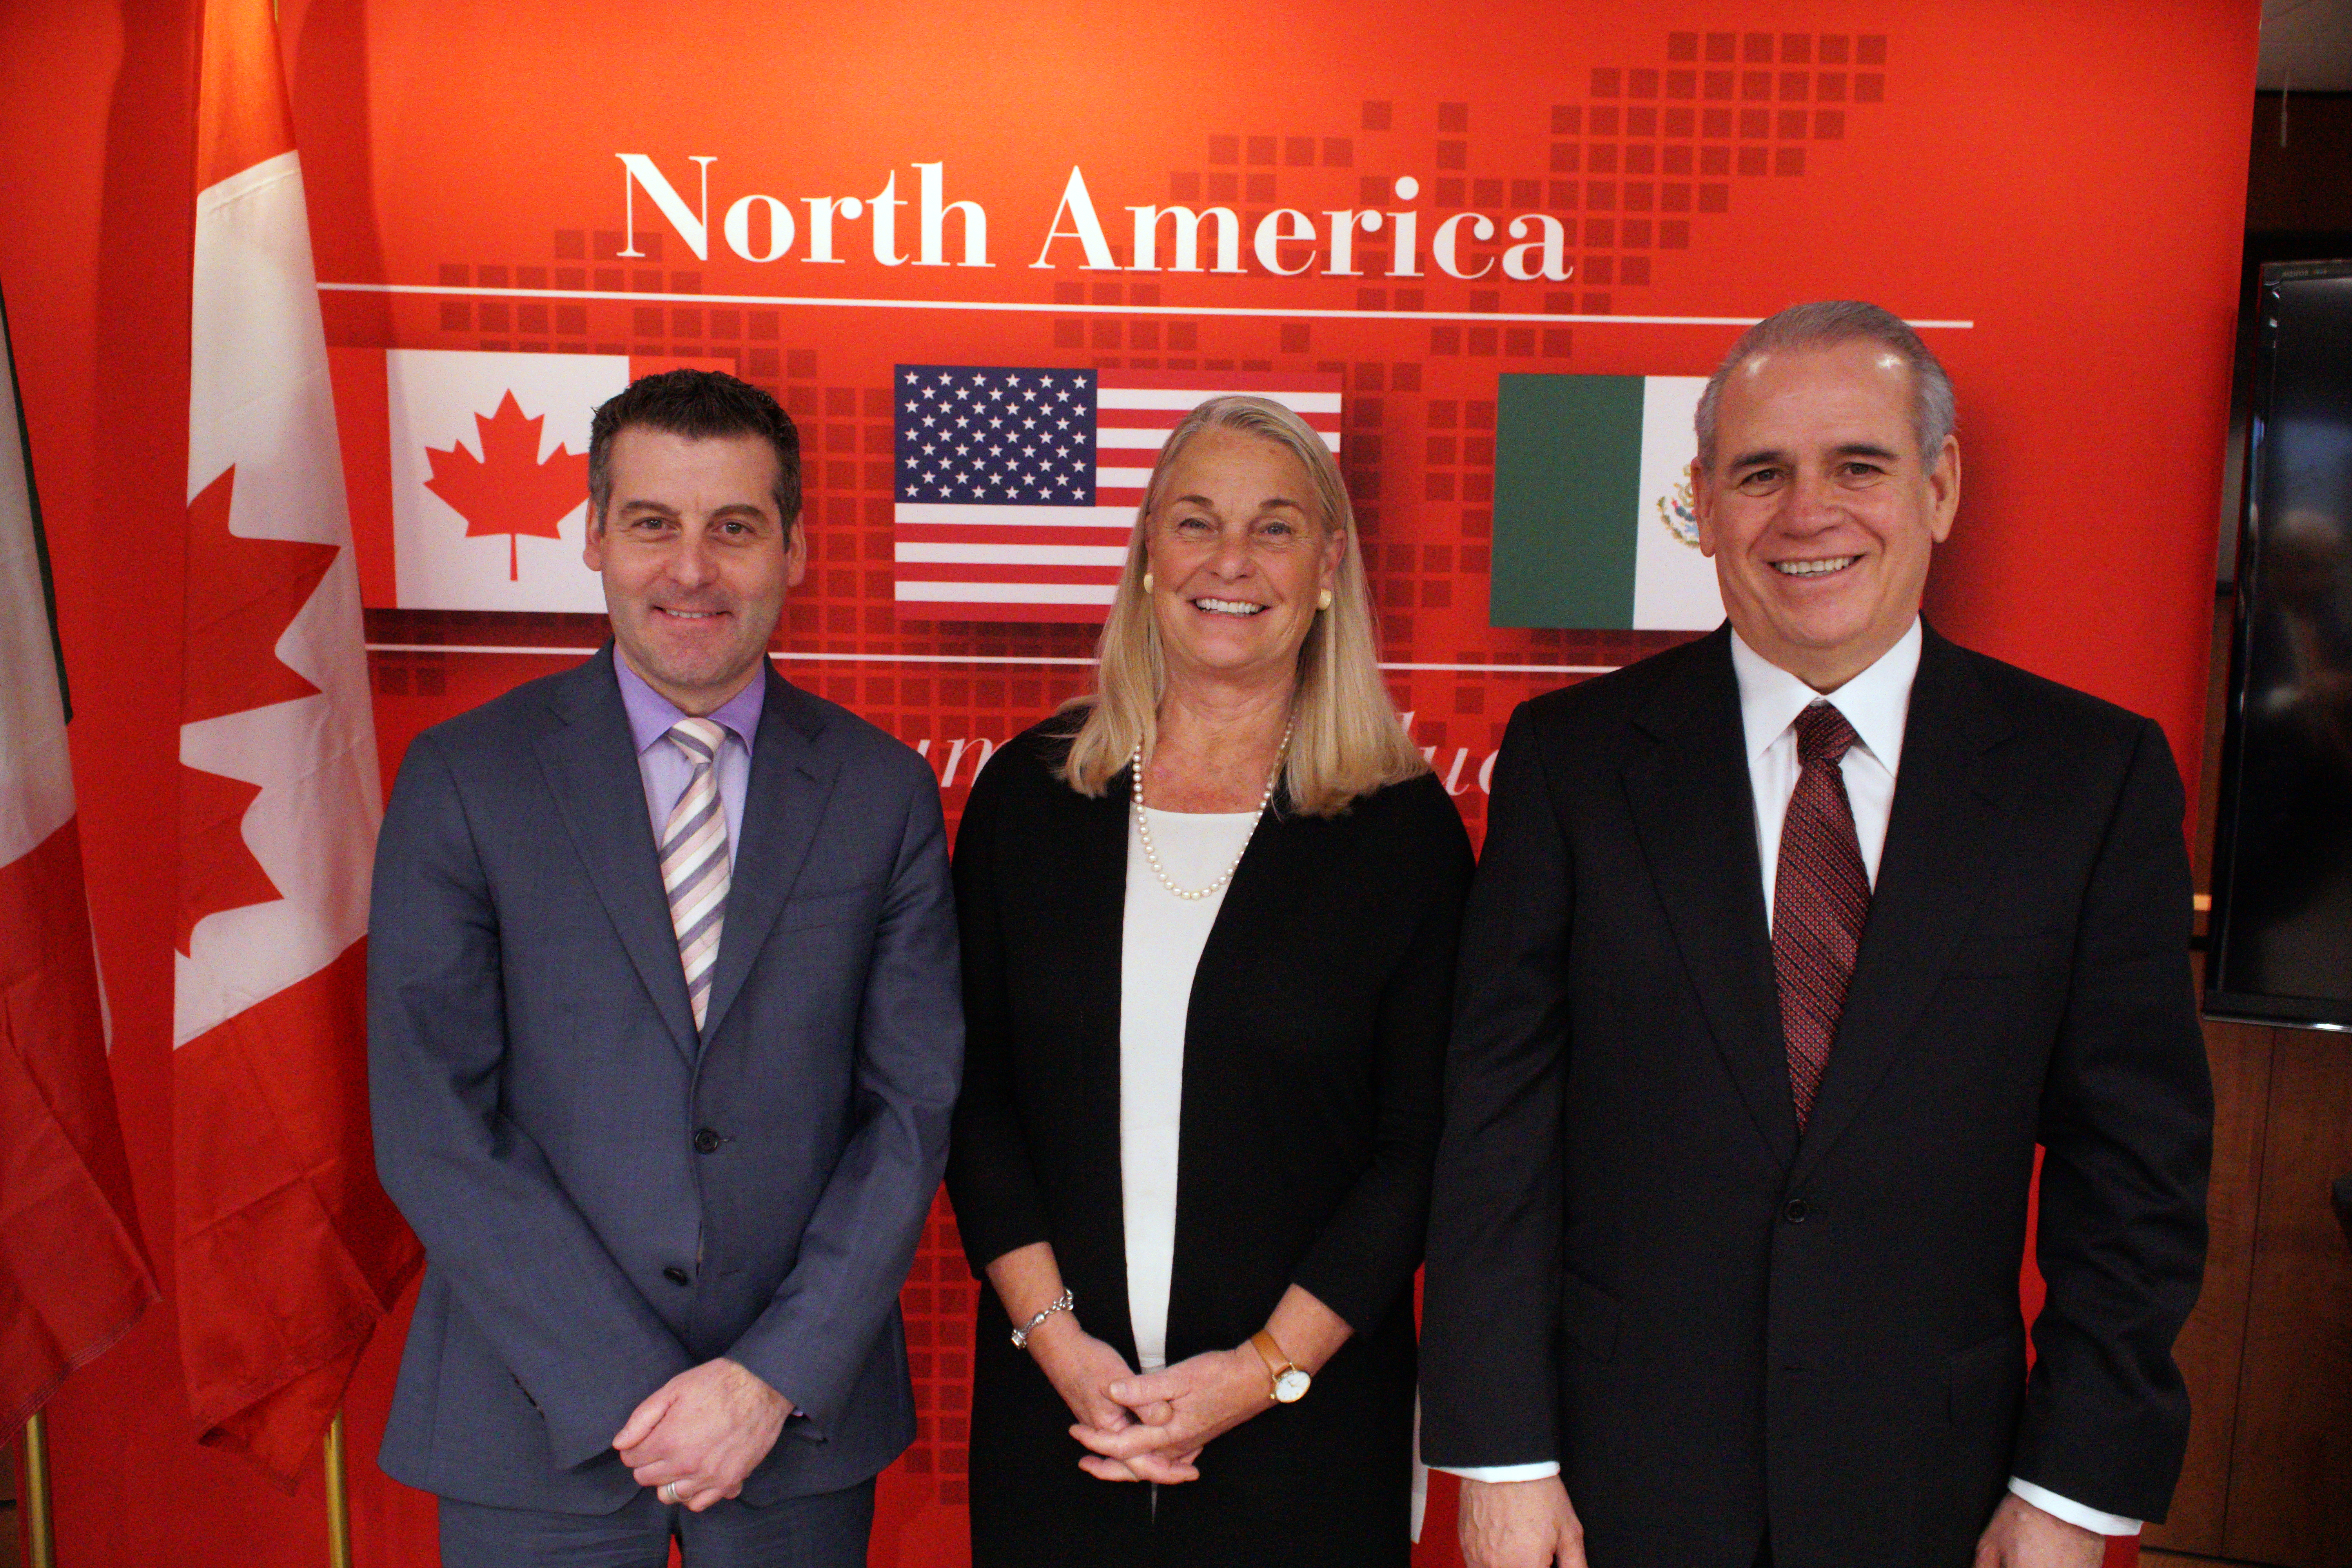 CPSC, PROFECO, and Health Canada Issue Joint Statement On The Fourth North America Product Safety Summit